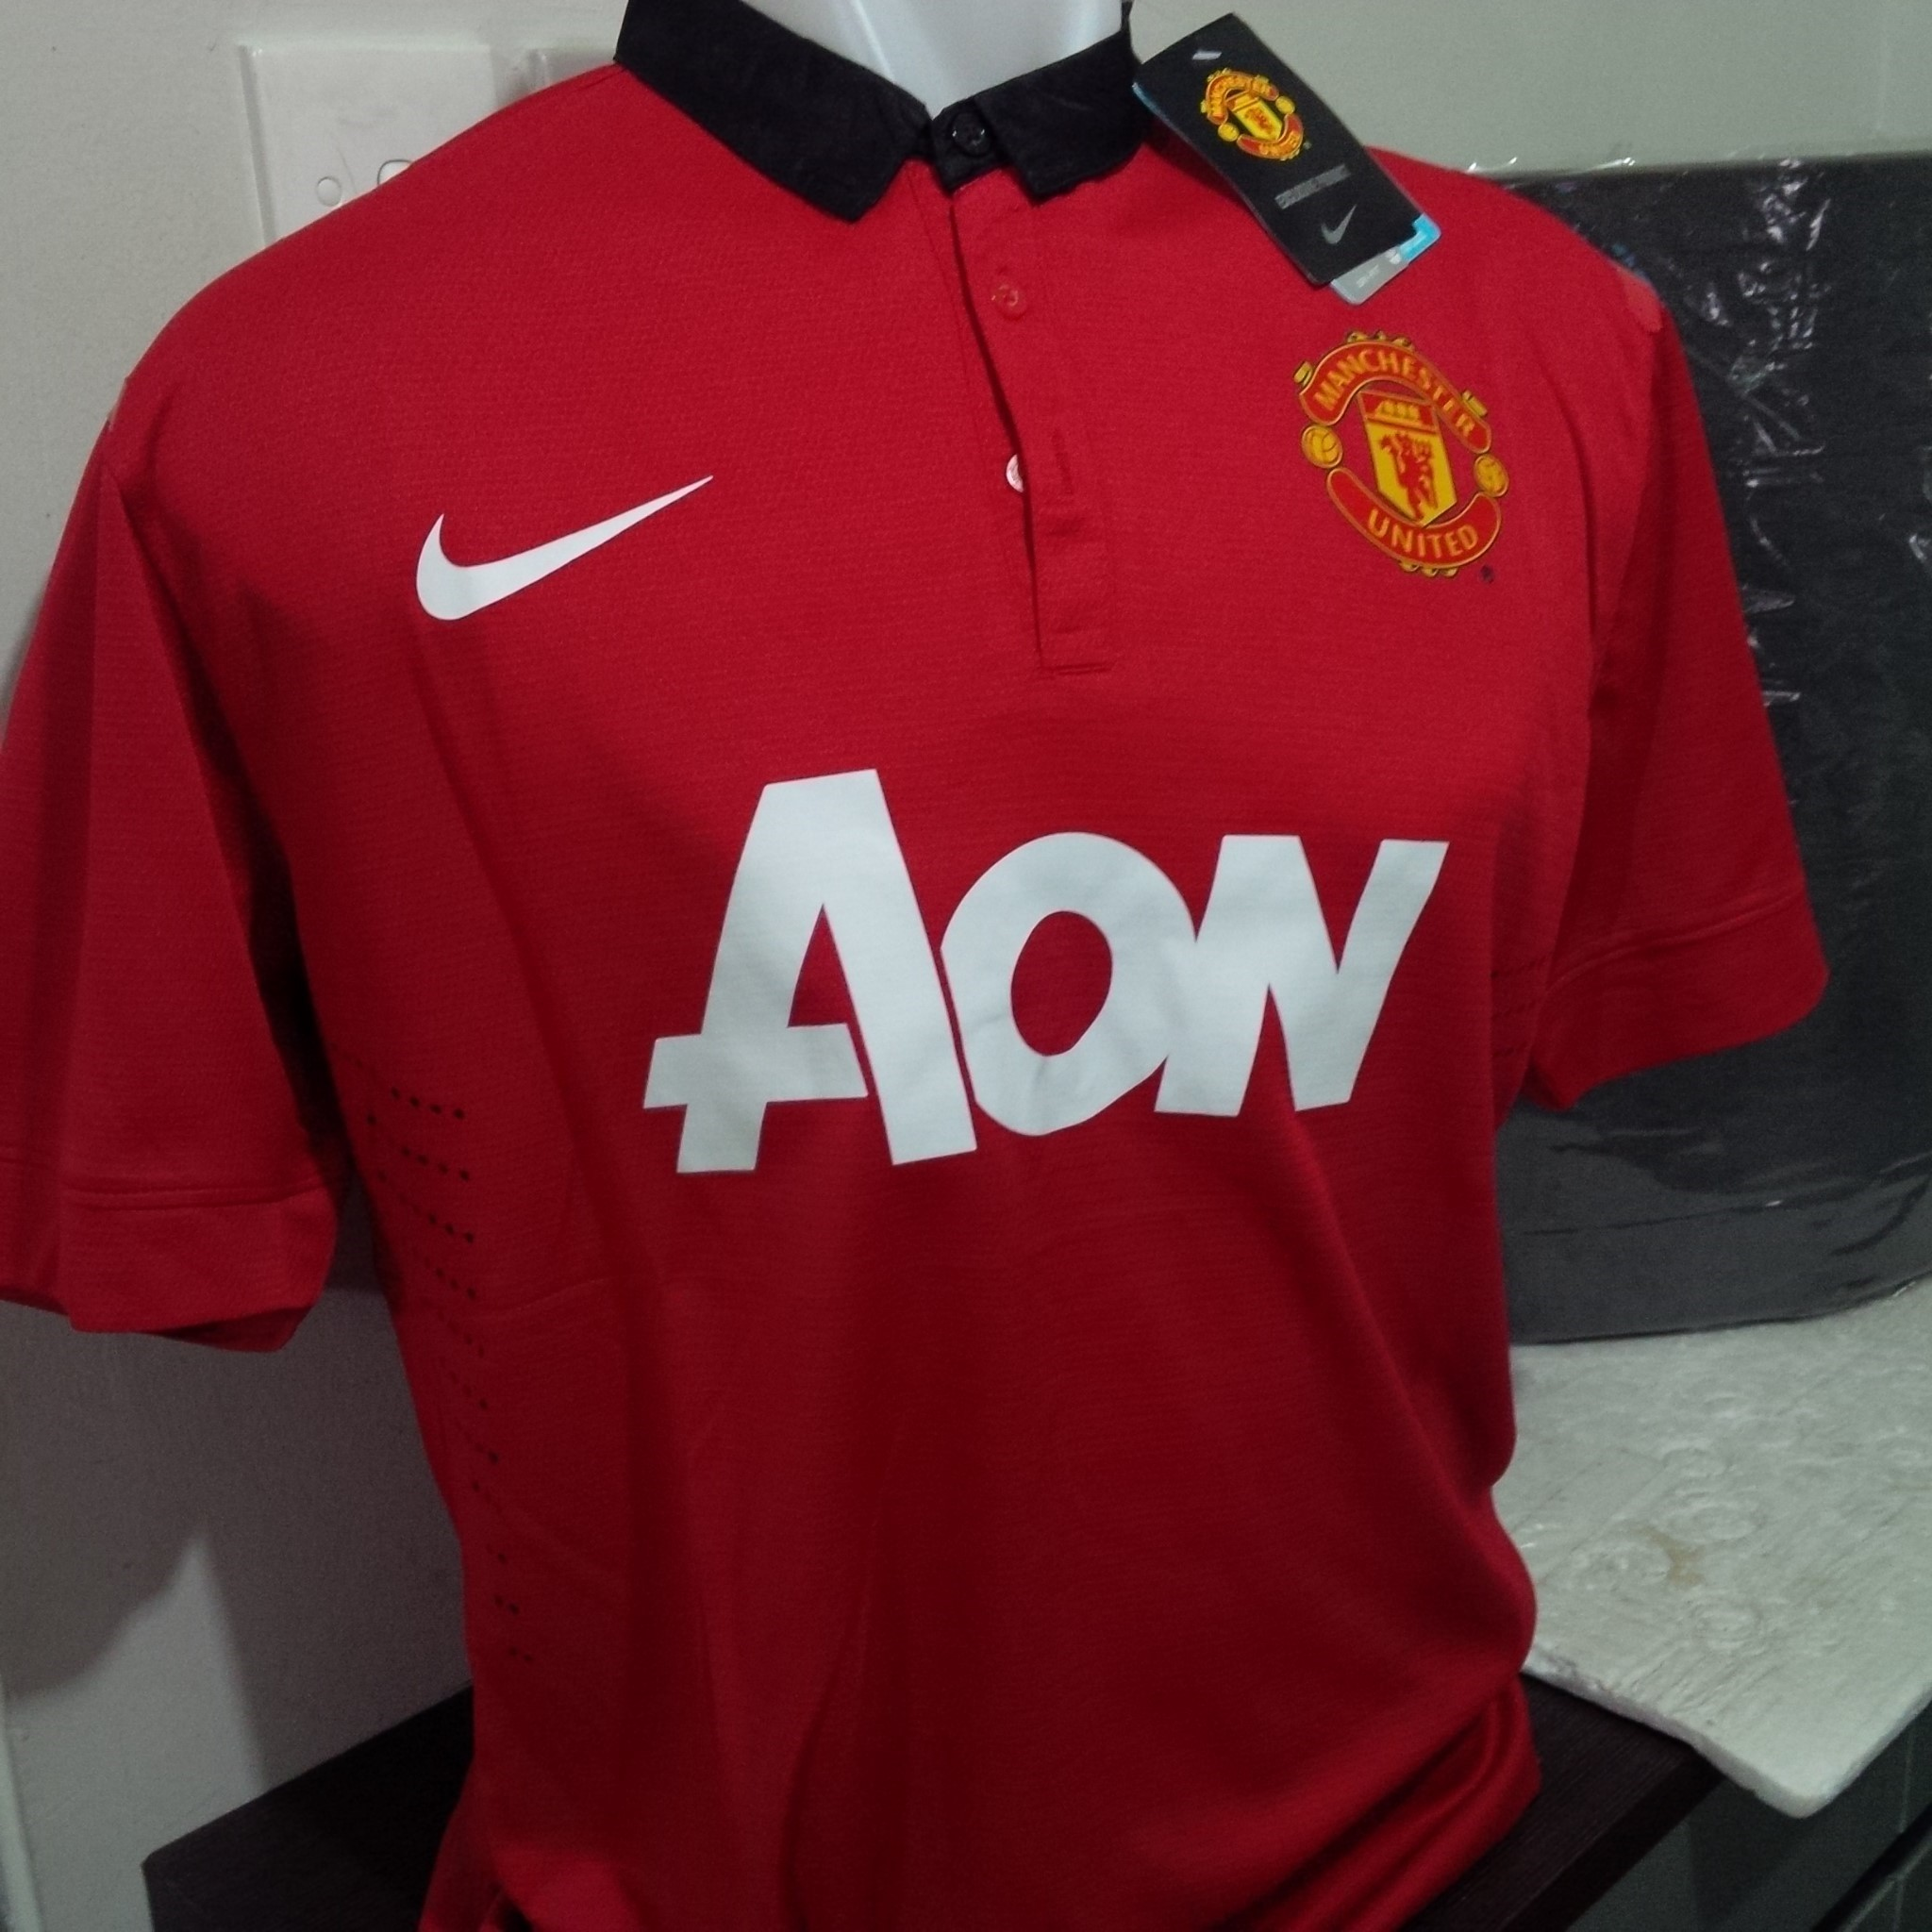 Jual jersey manchester united home 13 14 logo polyflex rko jual jersey manchester united home 13 14 logo polyflex rko jersey tokopedia voltagebd Image collections